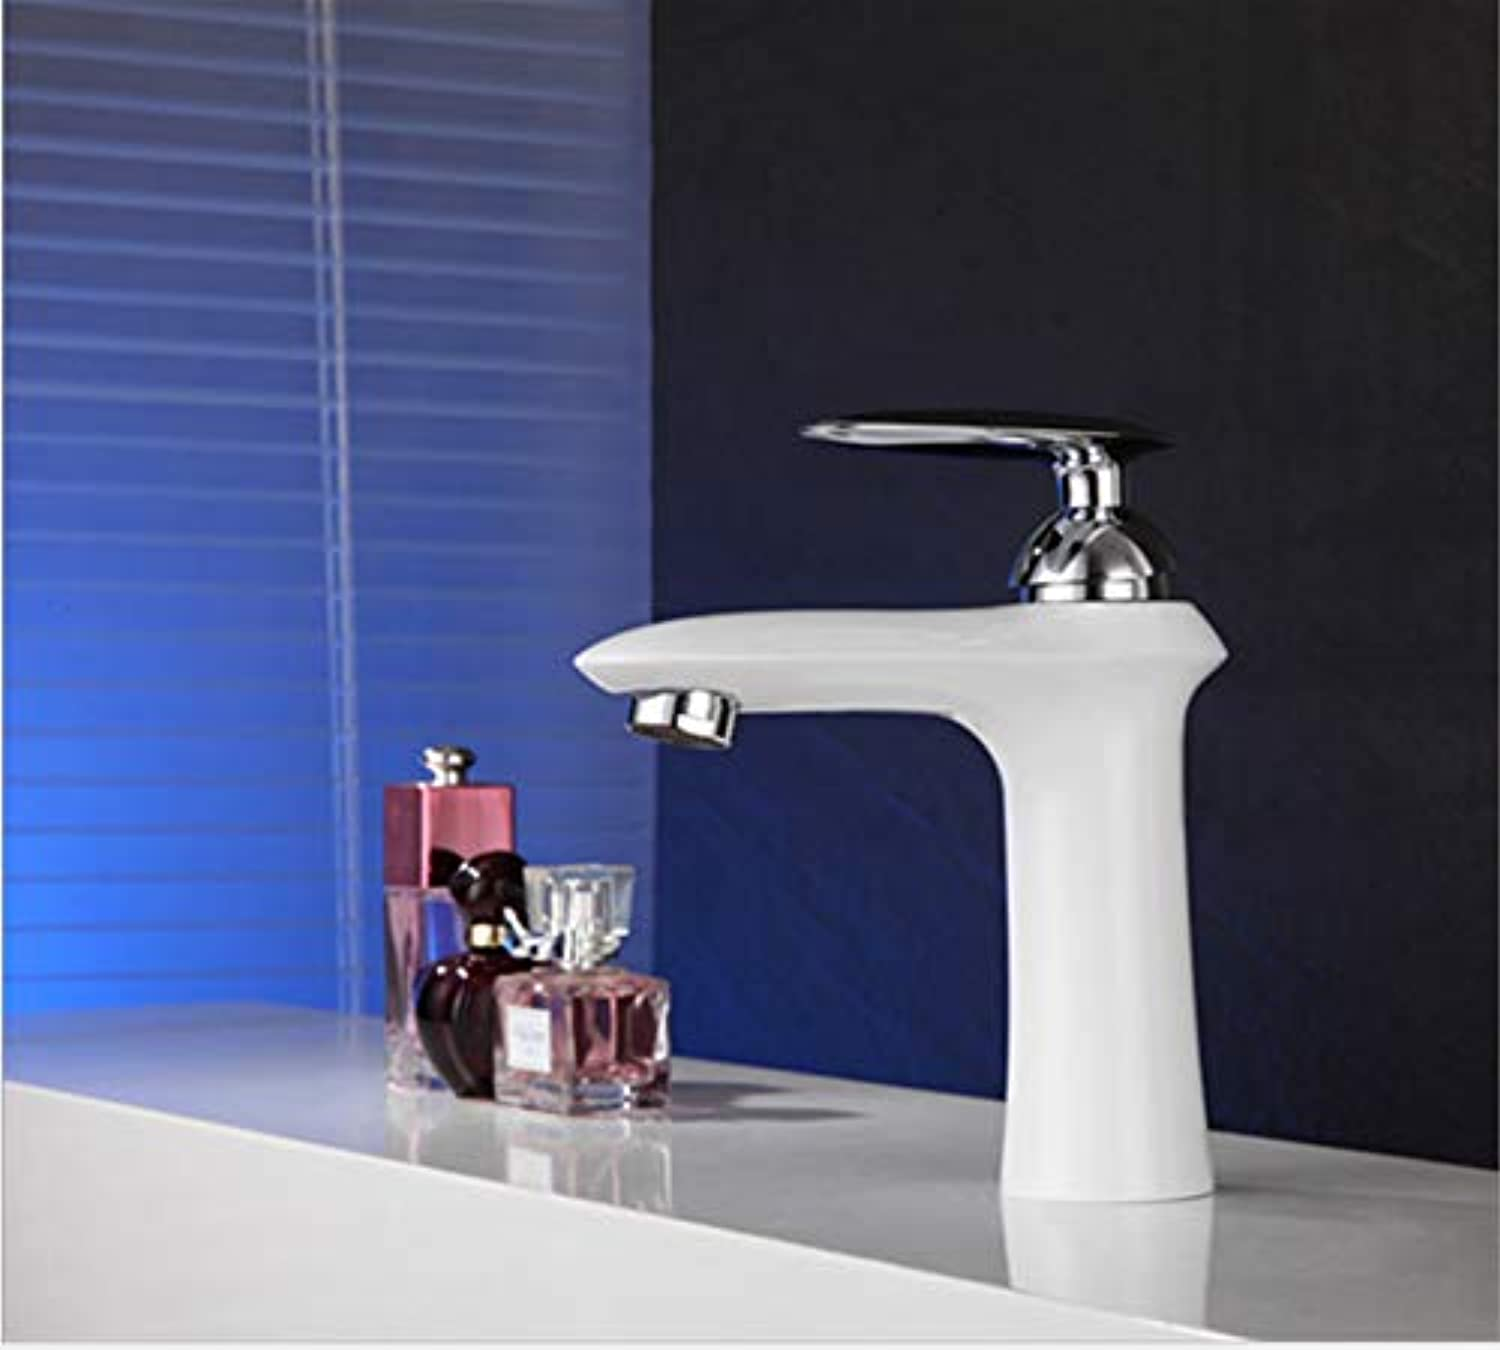 Kitchen Sink Taps Bathroom Sink Taps White Paint Hot And Cold Water Faucet Sink Basin Faucet Black Matte Paint Hot And Cold Faucet